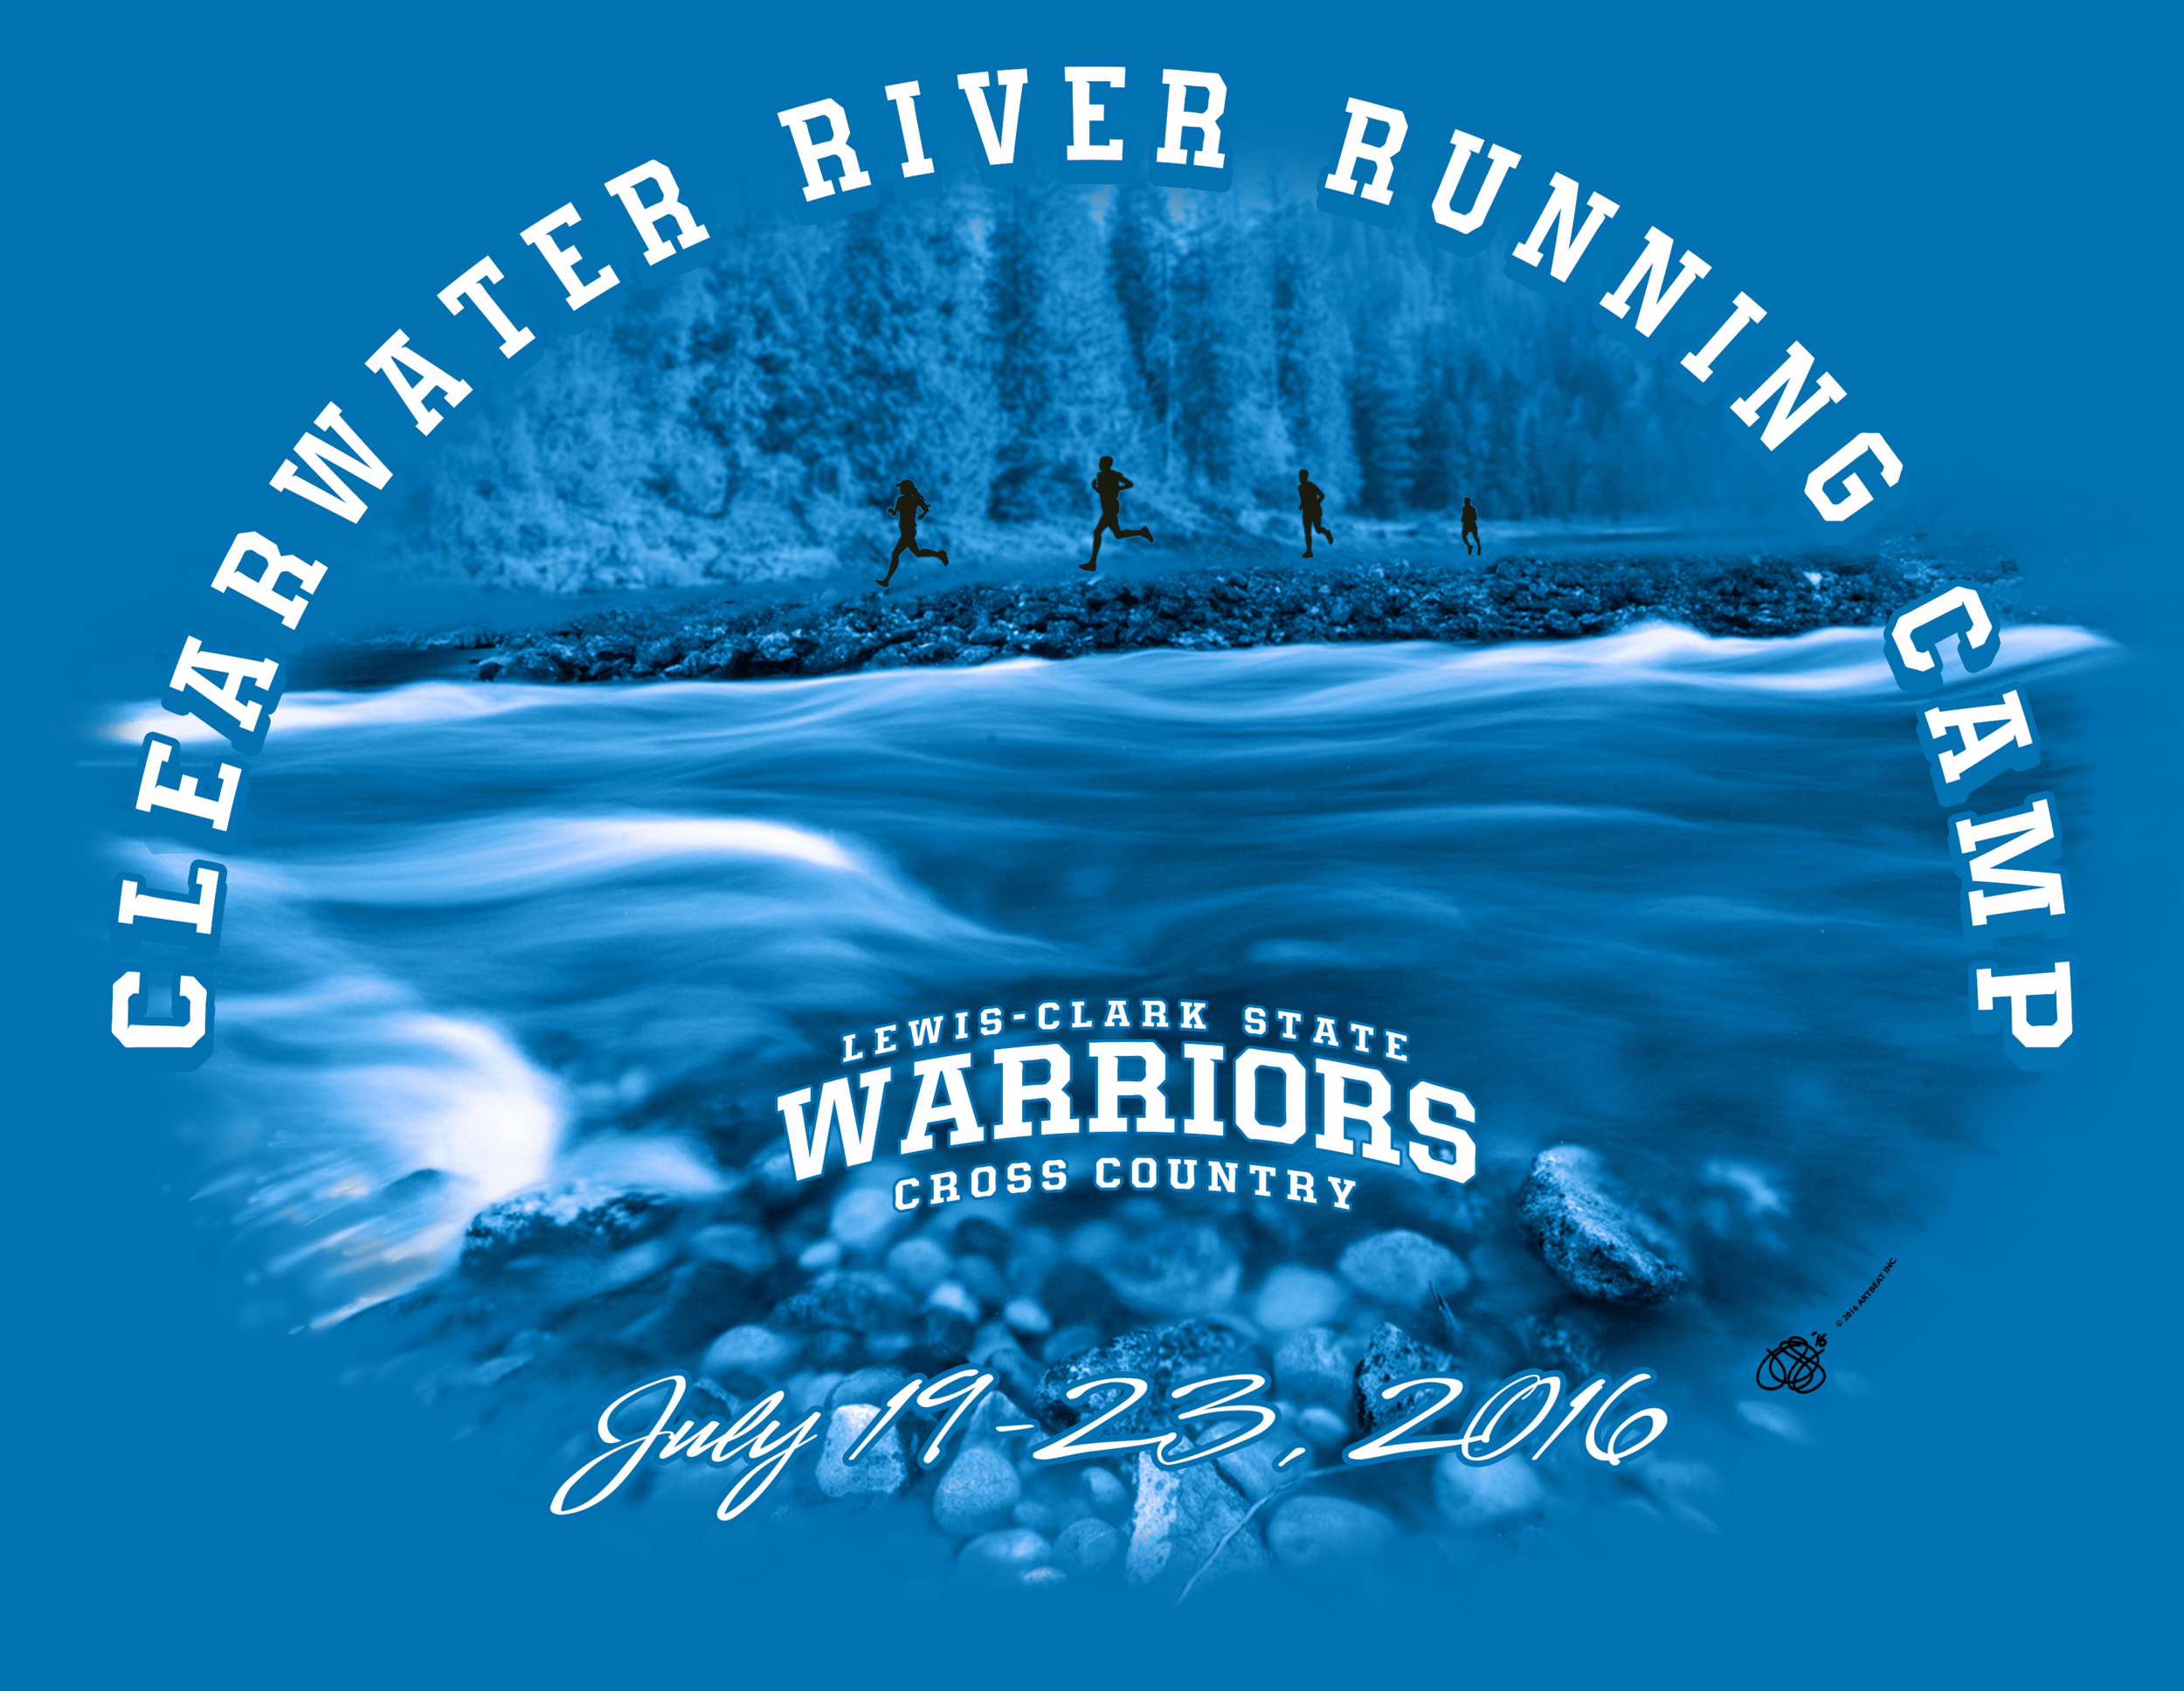 LCSC_2016-06_ClearwaterRunningCamp_RGB-Mockup_Sapphire.png